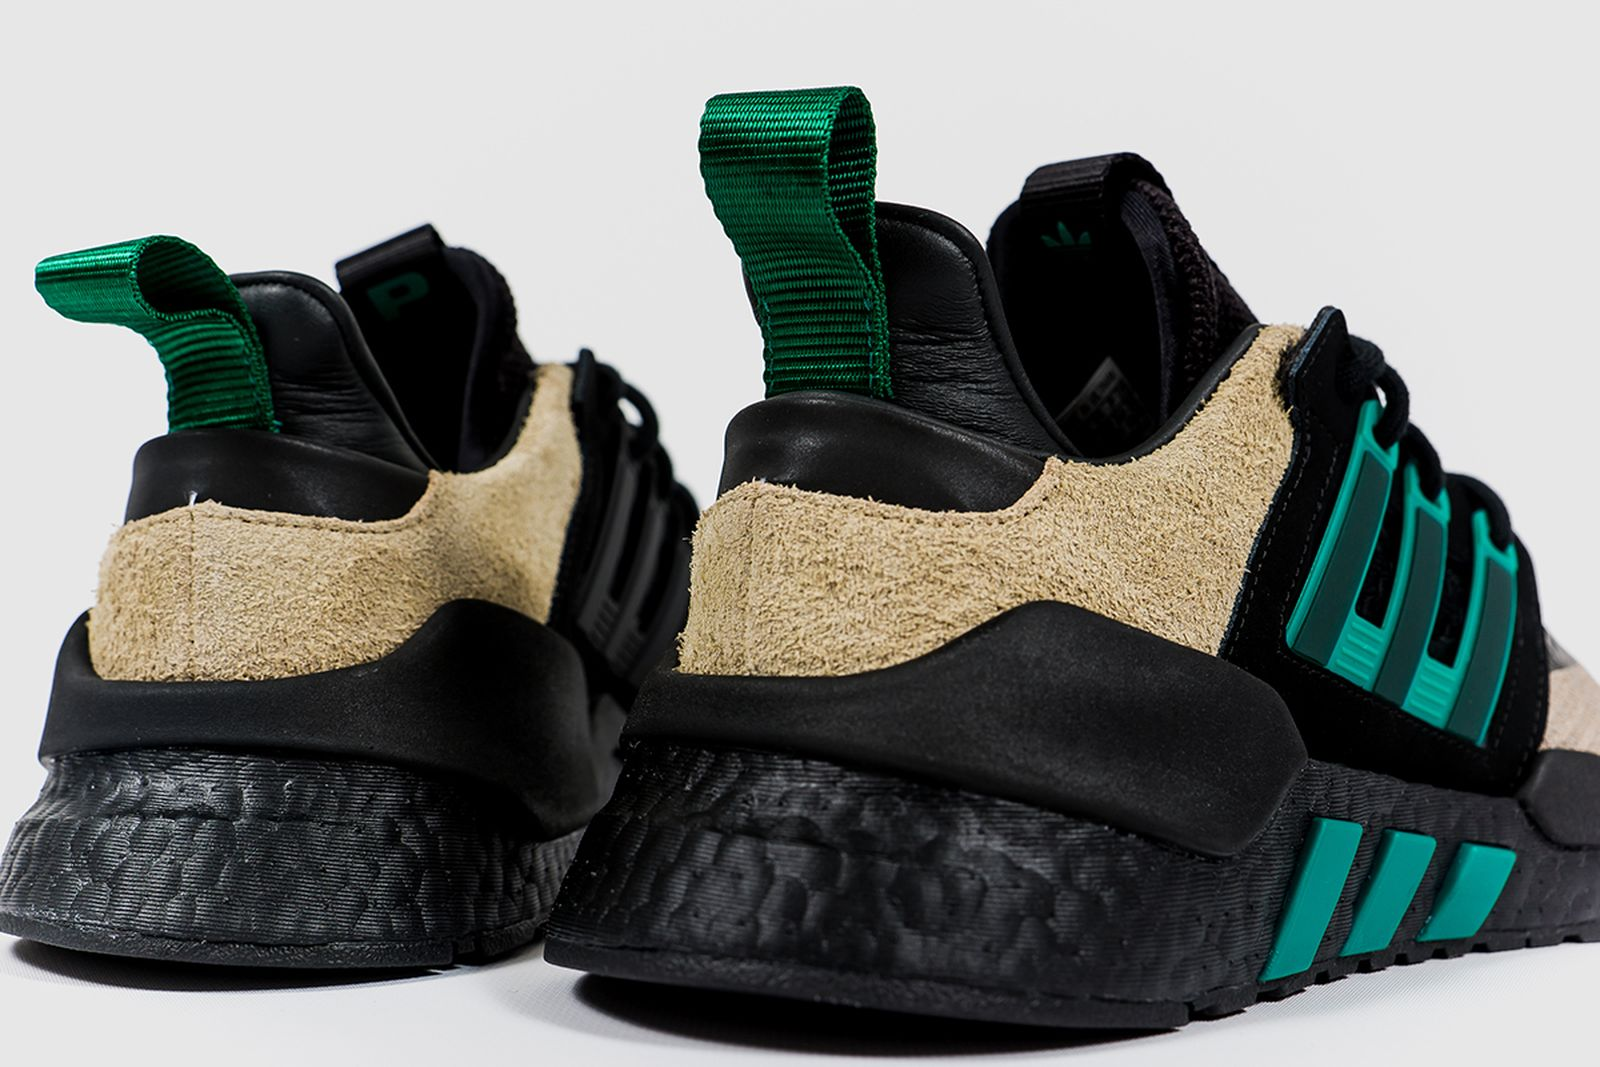 packer adidas eqt 91 18 release date price adidas EQT 91/18 packer shoes